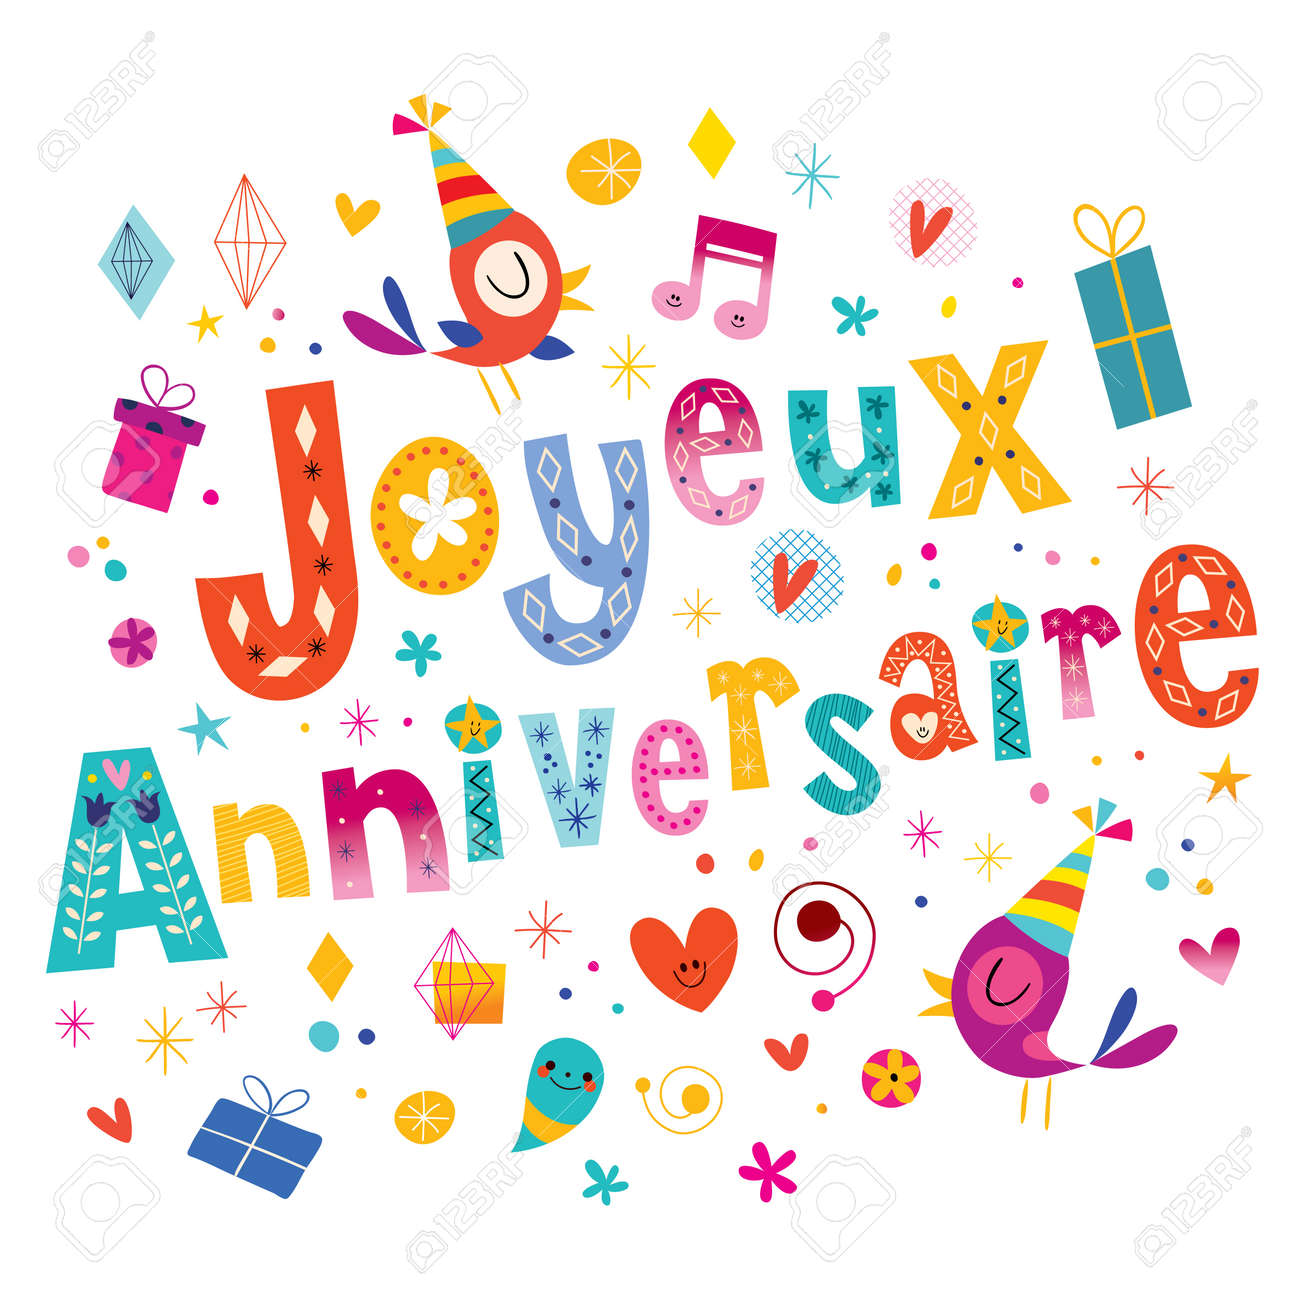 Joyeux anniversaire happy birthday in french greeting card royalty joyeux anniversaire happy birthday in french greeting card stock vector 63641886 m4hsunfo